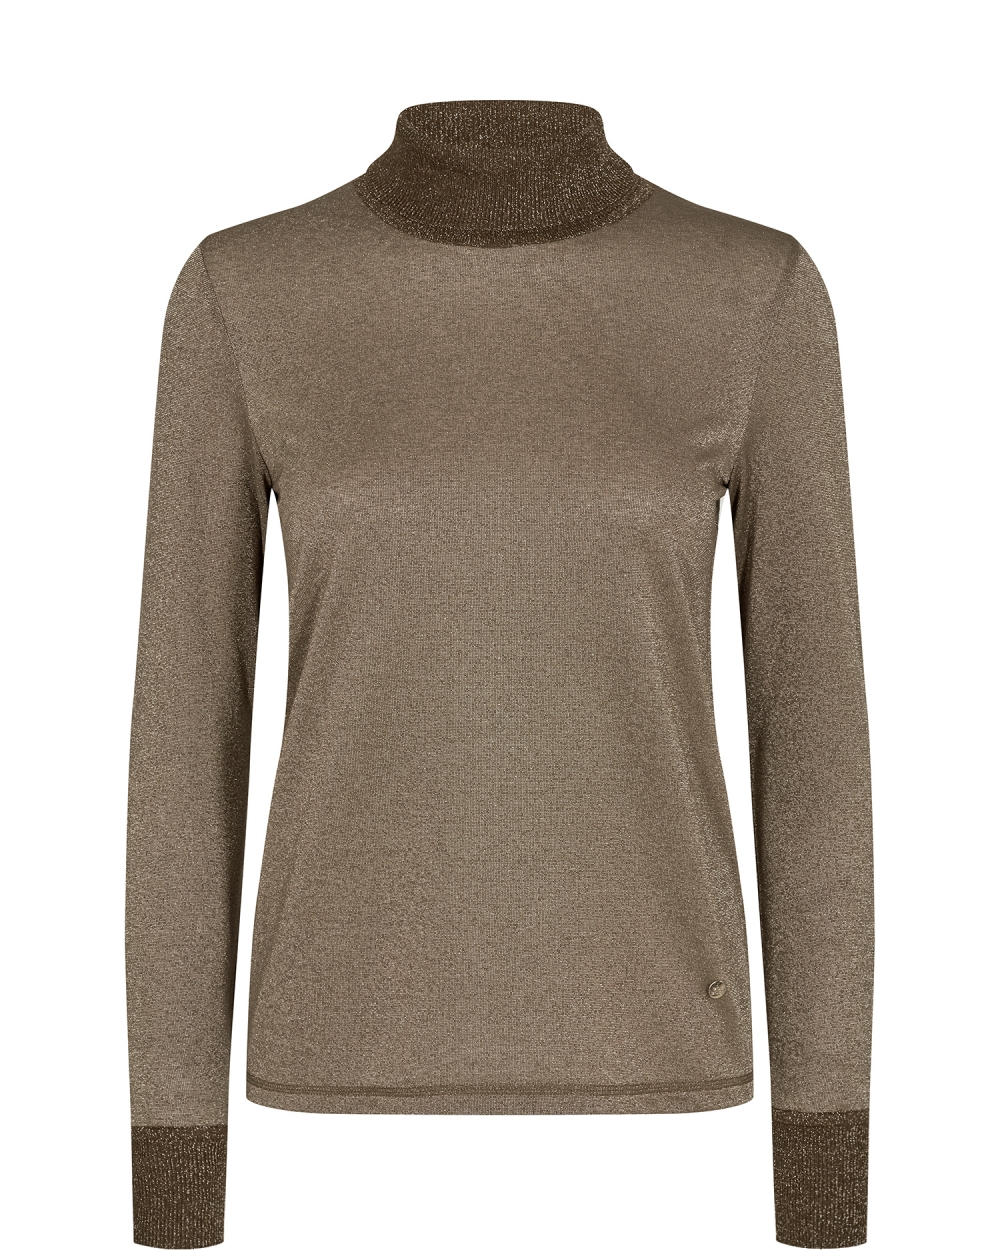 Mos Mosh Casio Roll-neck Tee LS - Chocolate Chip